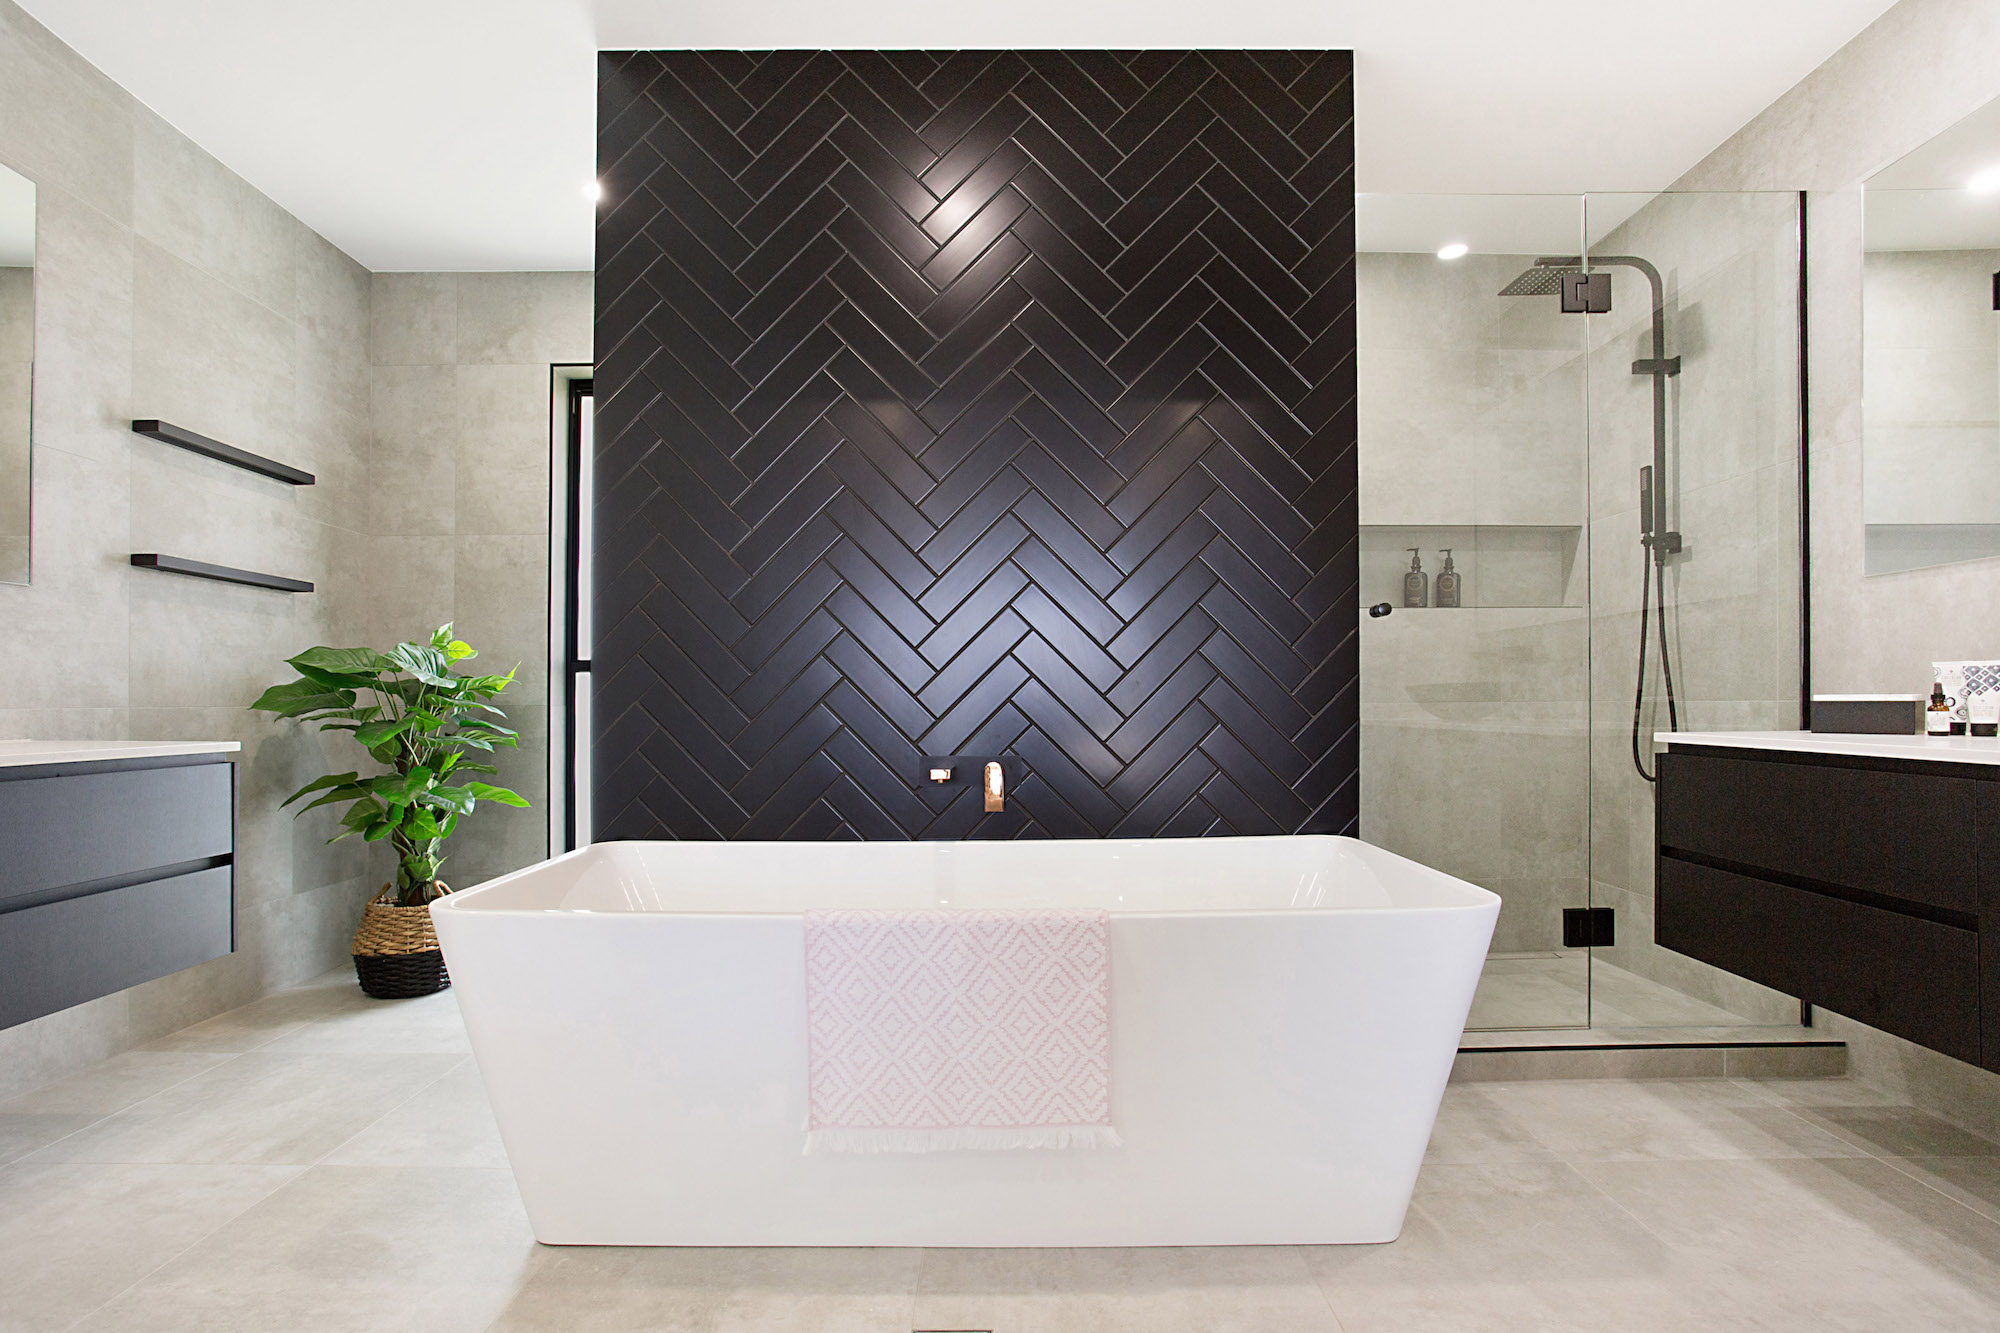 matt black herringbone wall in an exclusive his and hers bathroom as part of the master retreat